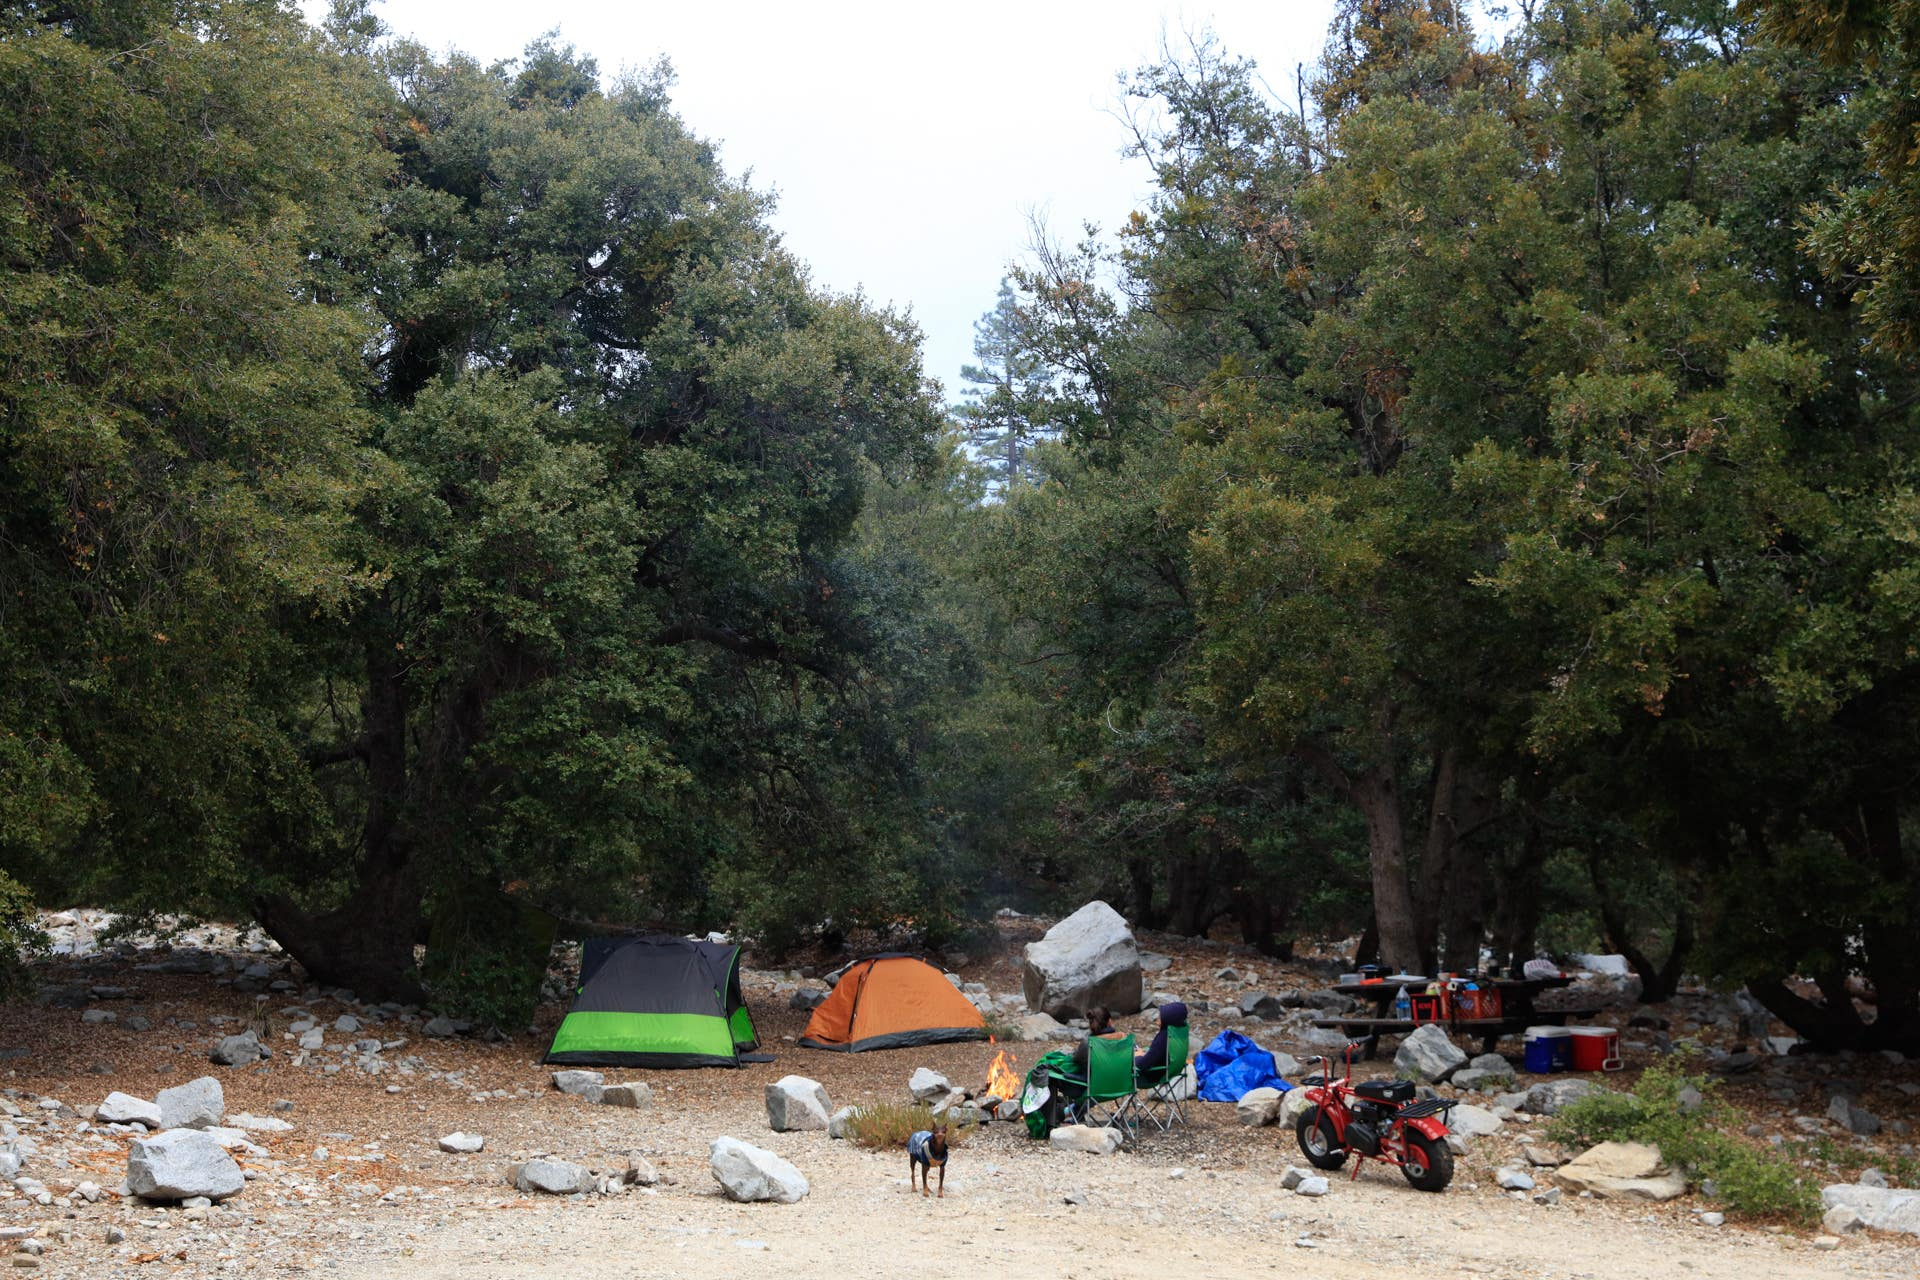 Crystal Lake Recreation Area Campground in the Angeles National Forest